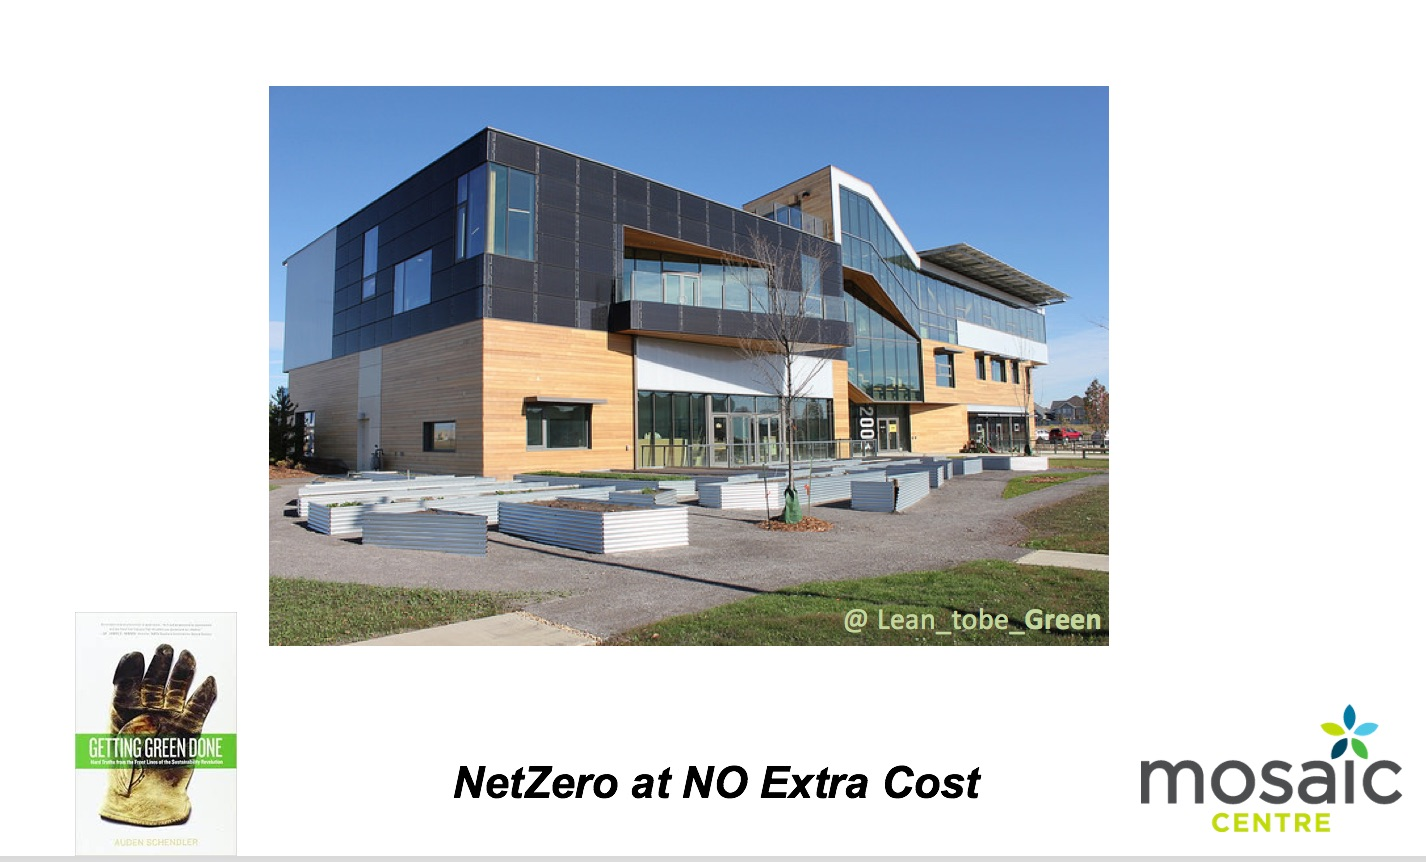 Netzero building revolution 7 netzero projects and counting for Netzro net